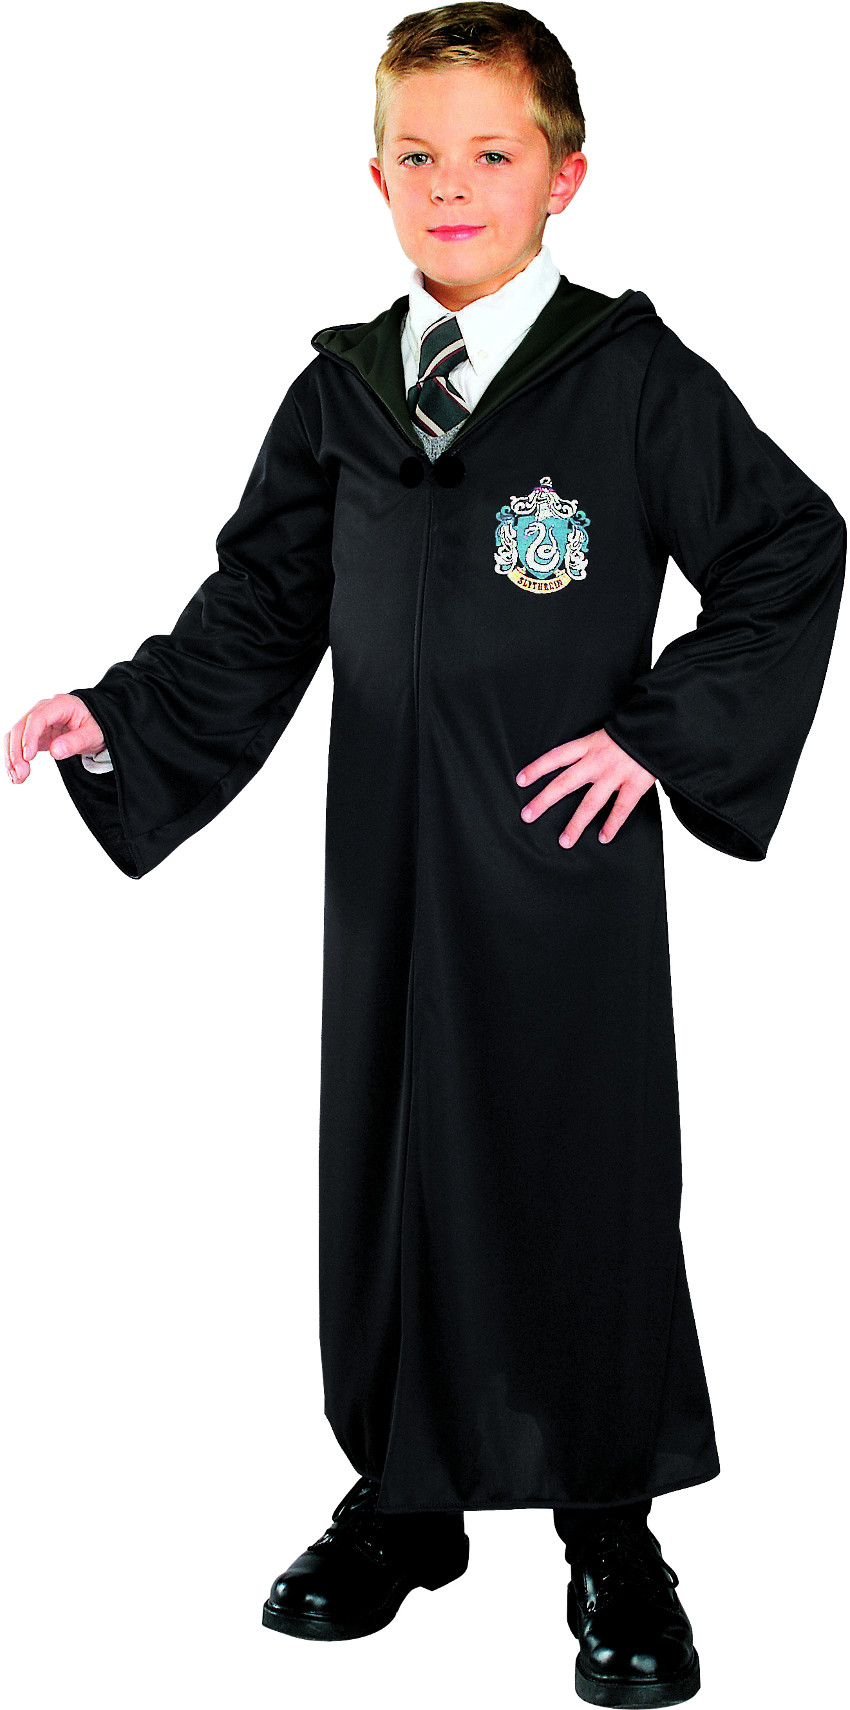 Childs Harry Potter Slytherin House Malfoy Costume Robe by Rubies Costume Co